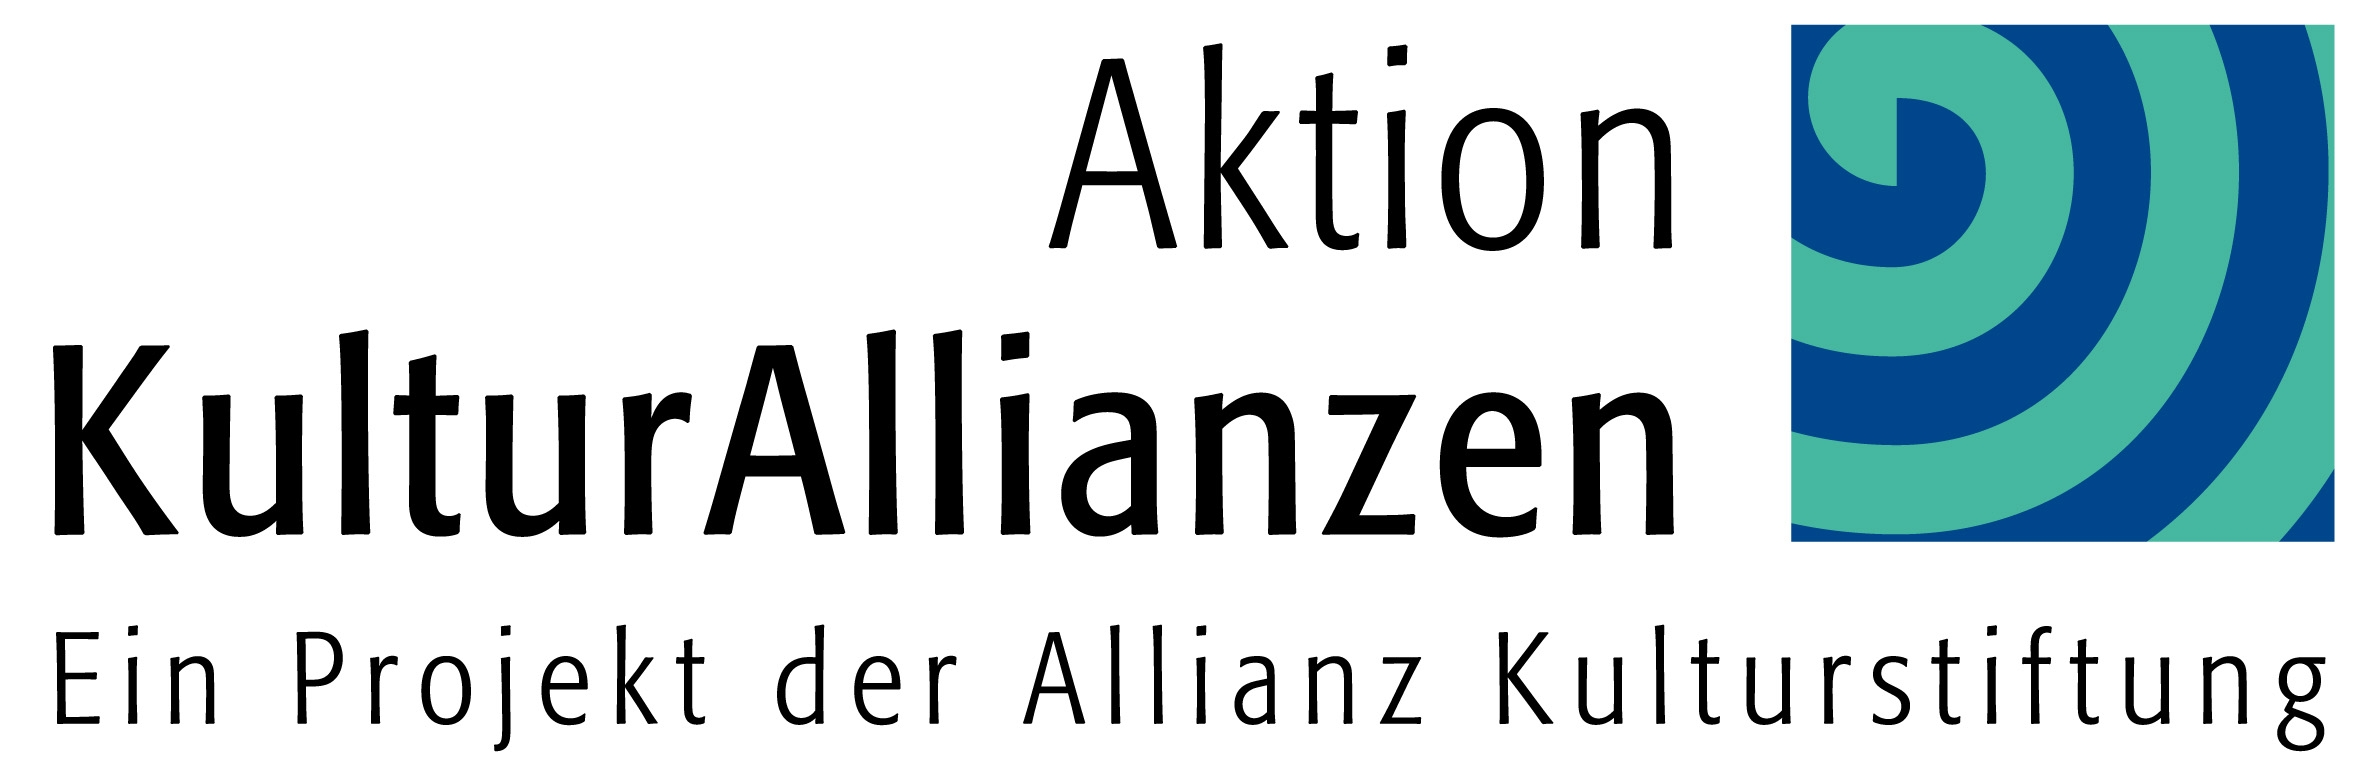 Aktion KulturAllianzen